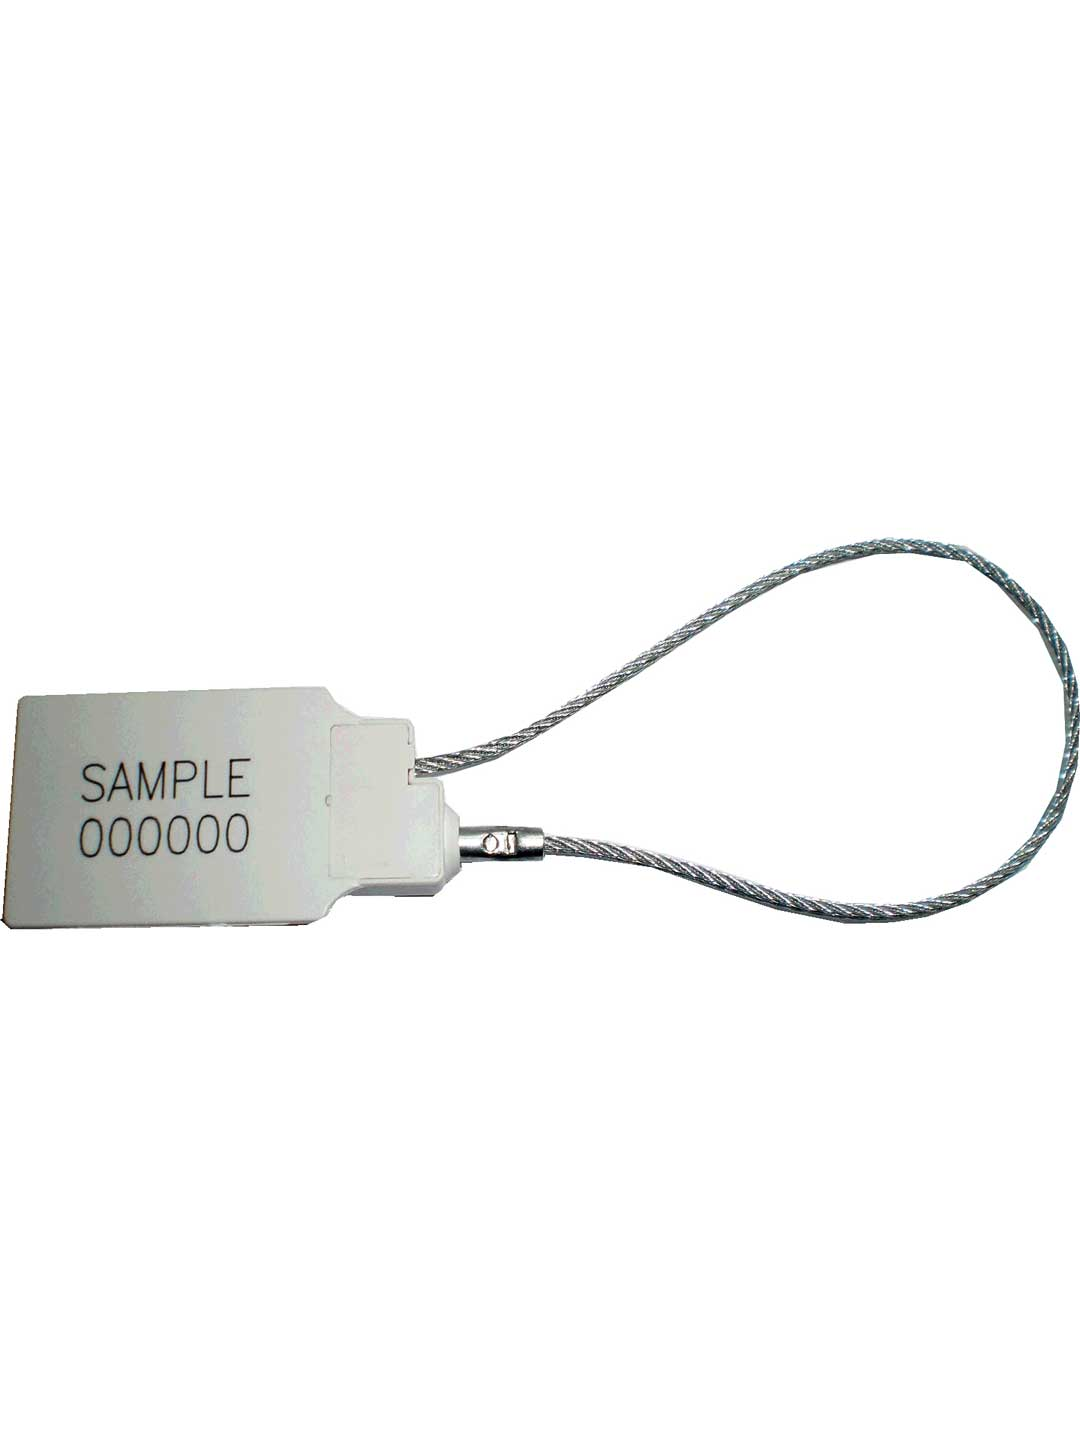 Secure Key Ring Seal